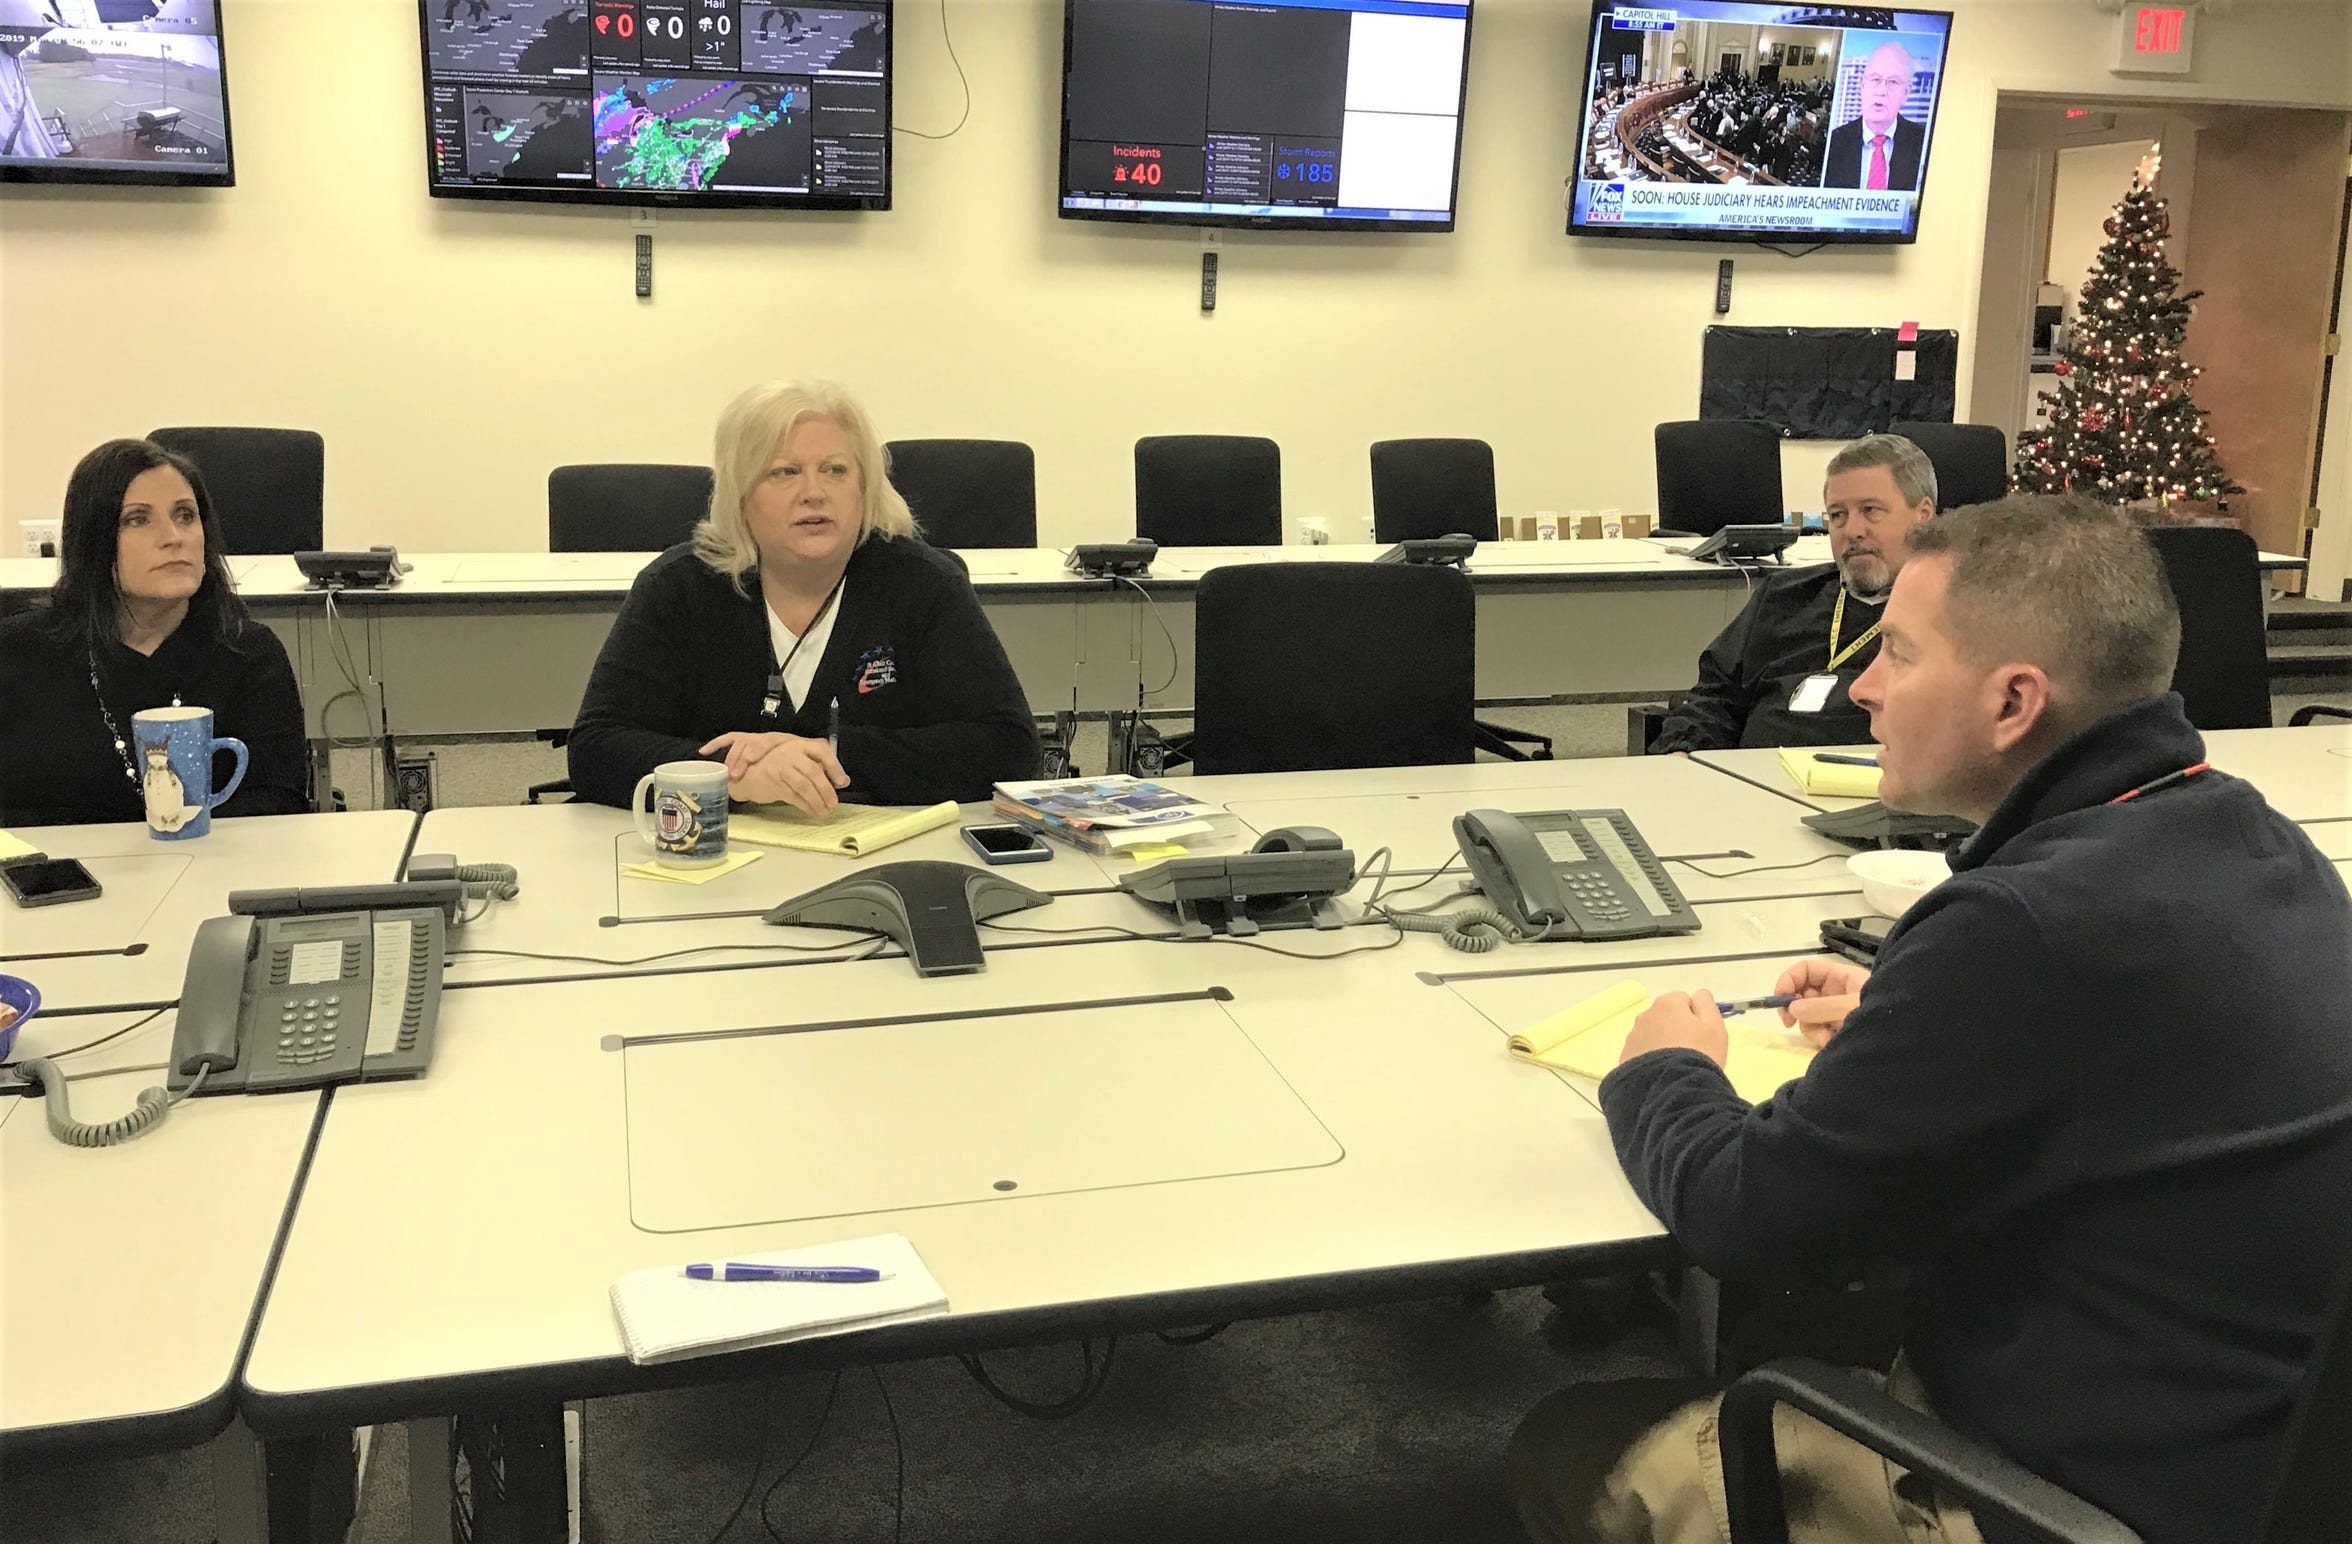 St. Clair County Emergency Management Director Justin Westmiller, right, meets with other officials at a staff meeting the morning of Monday, Dec. 9, 2018.